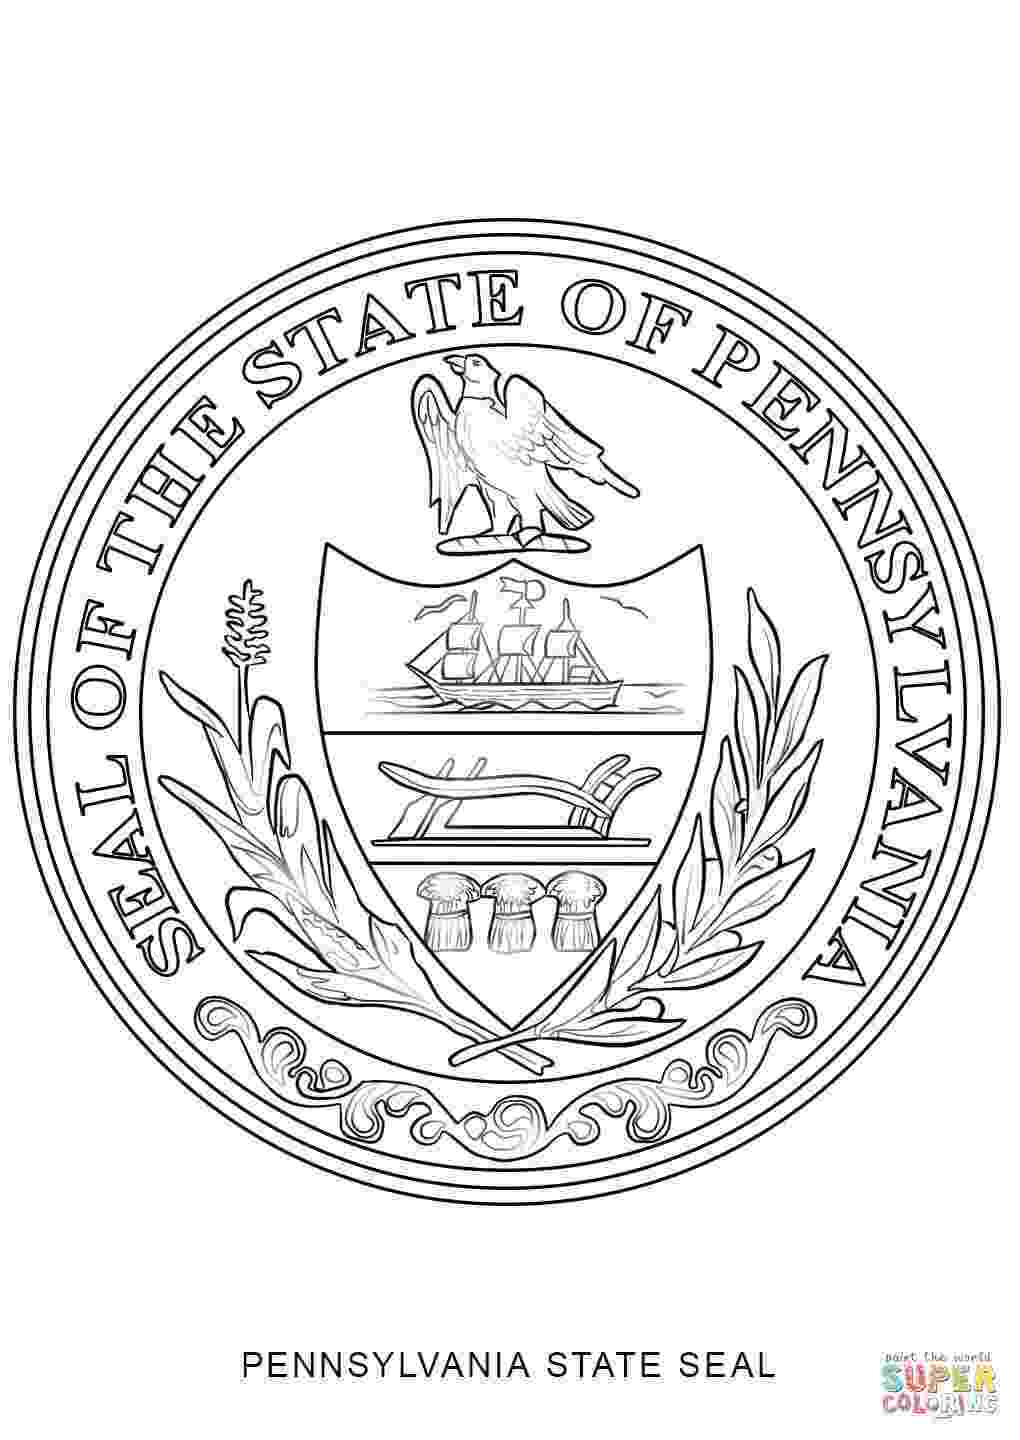 massachusetts state seal coloring page origami n39 stuff 4 kids 50 states coloring seal massachusetts state page